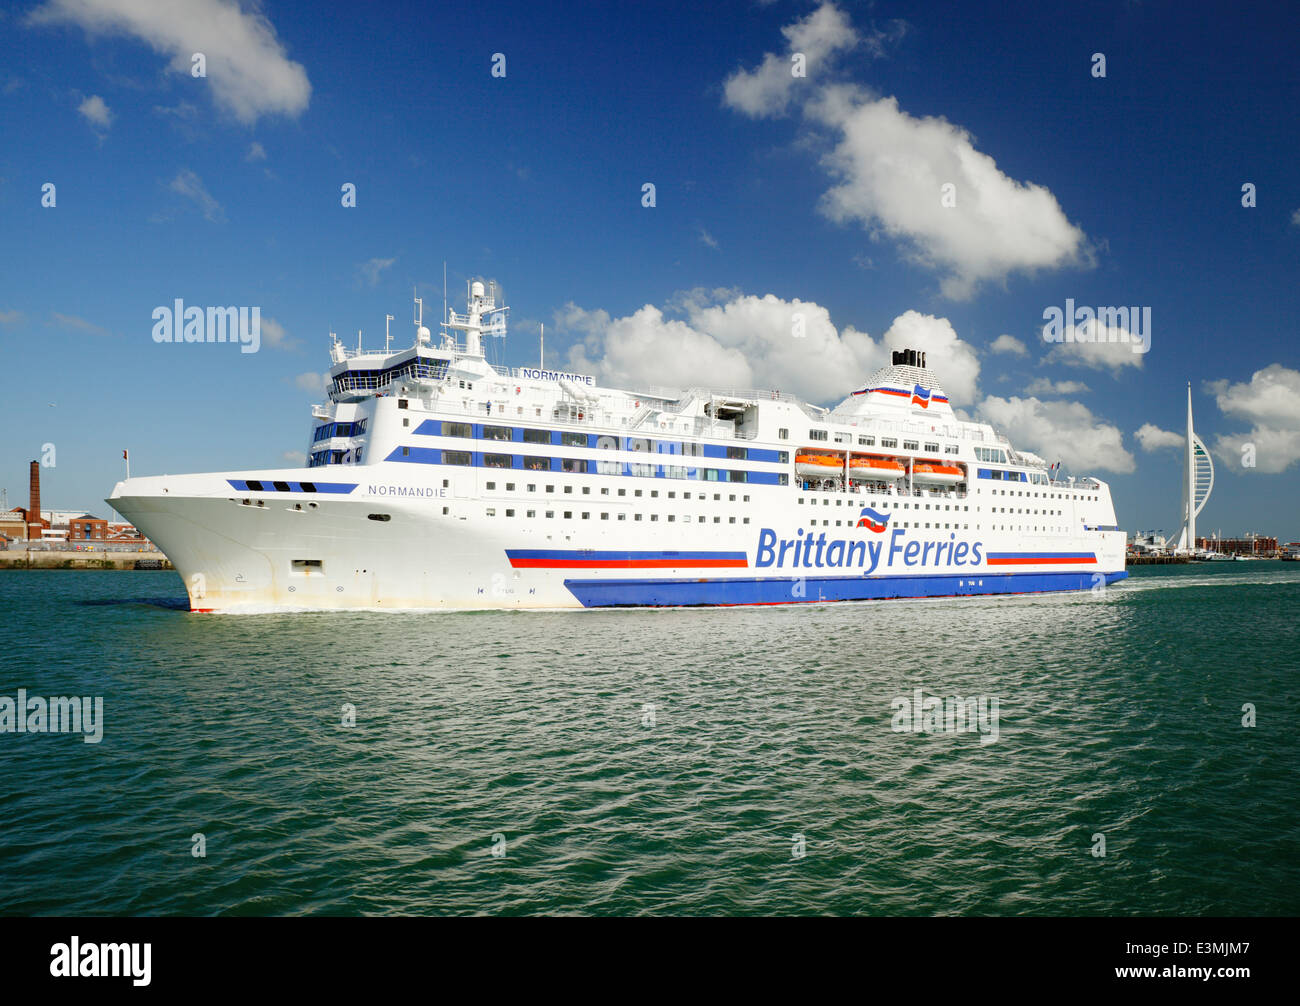 Brittany Ferry Normandie, arriving at Portsmouth. - Stock Image